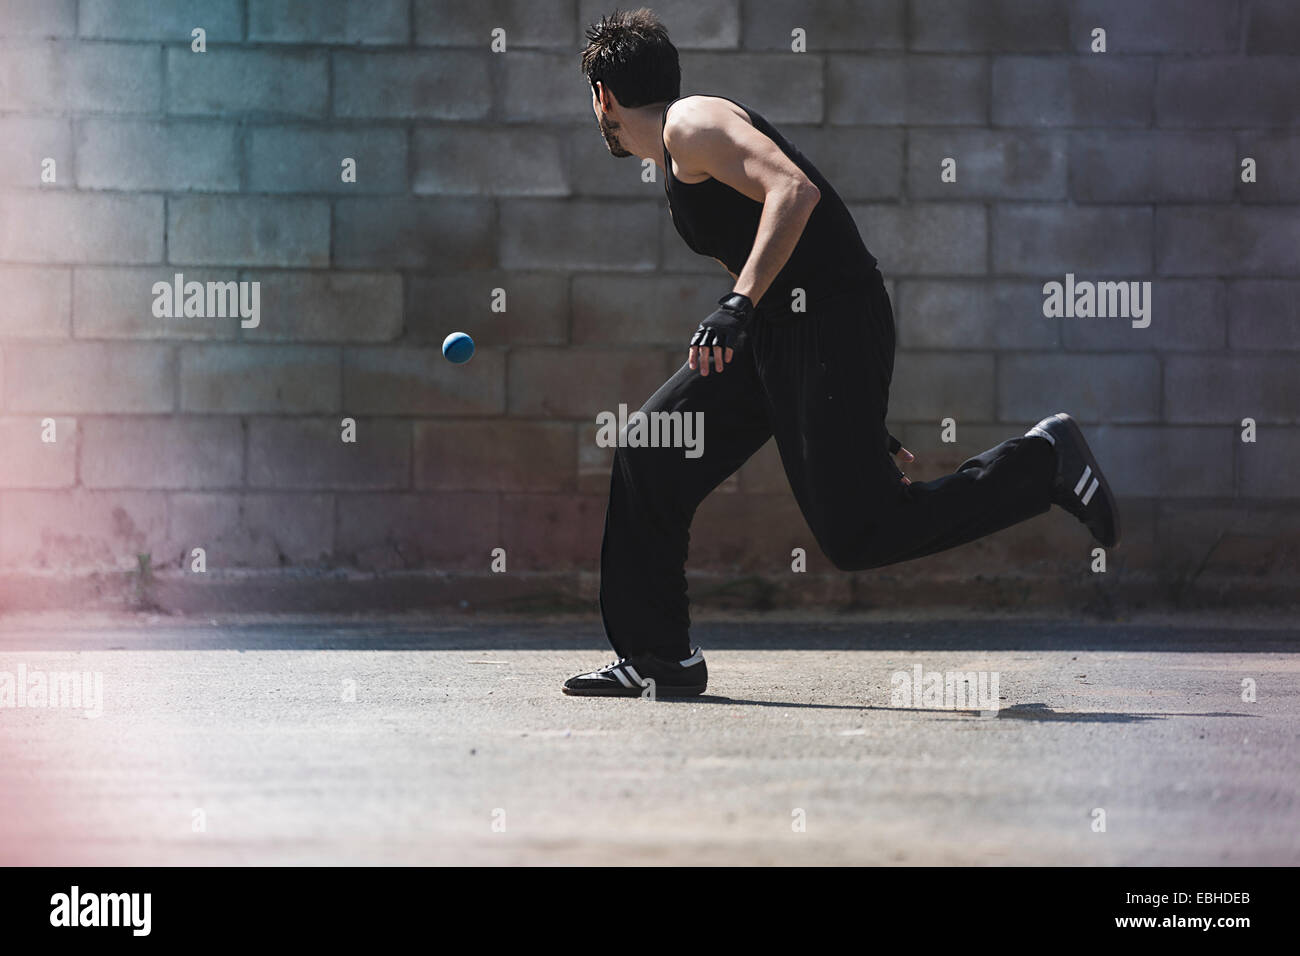 Young male handball player running for ball - Stock Image